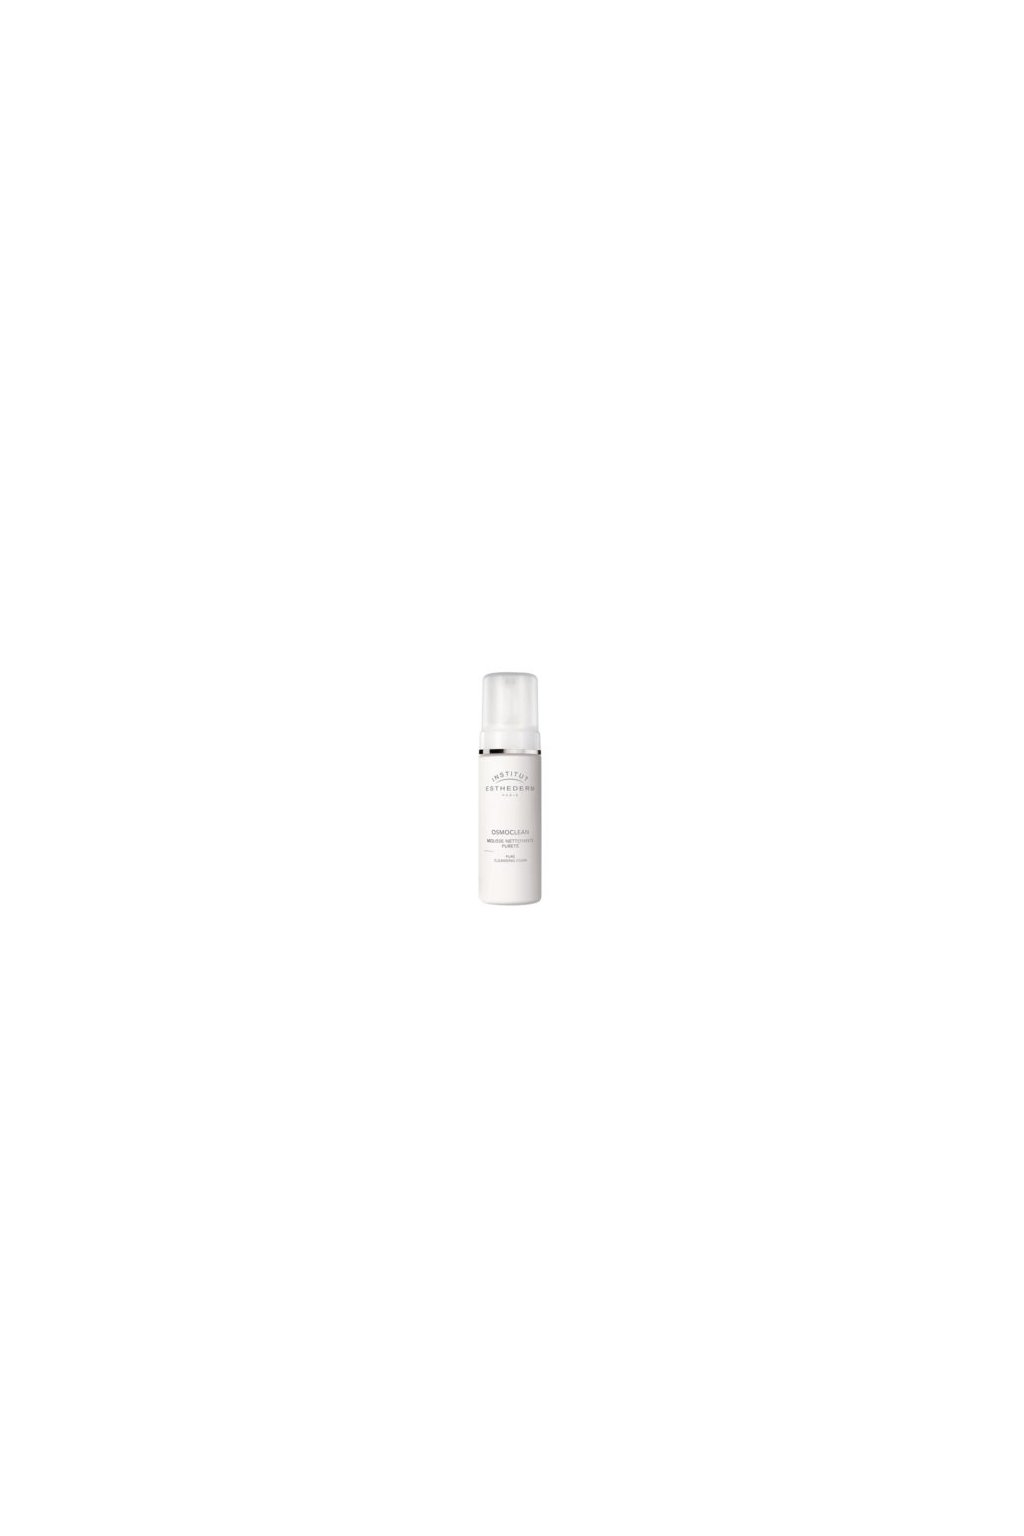 OSMOCLEAN Pure Cleansing Foam 150ml V600401 247x300